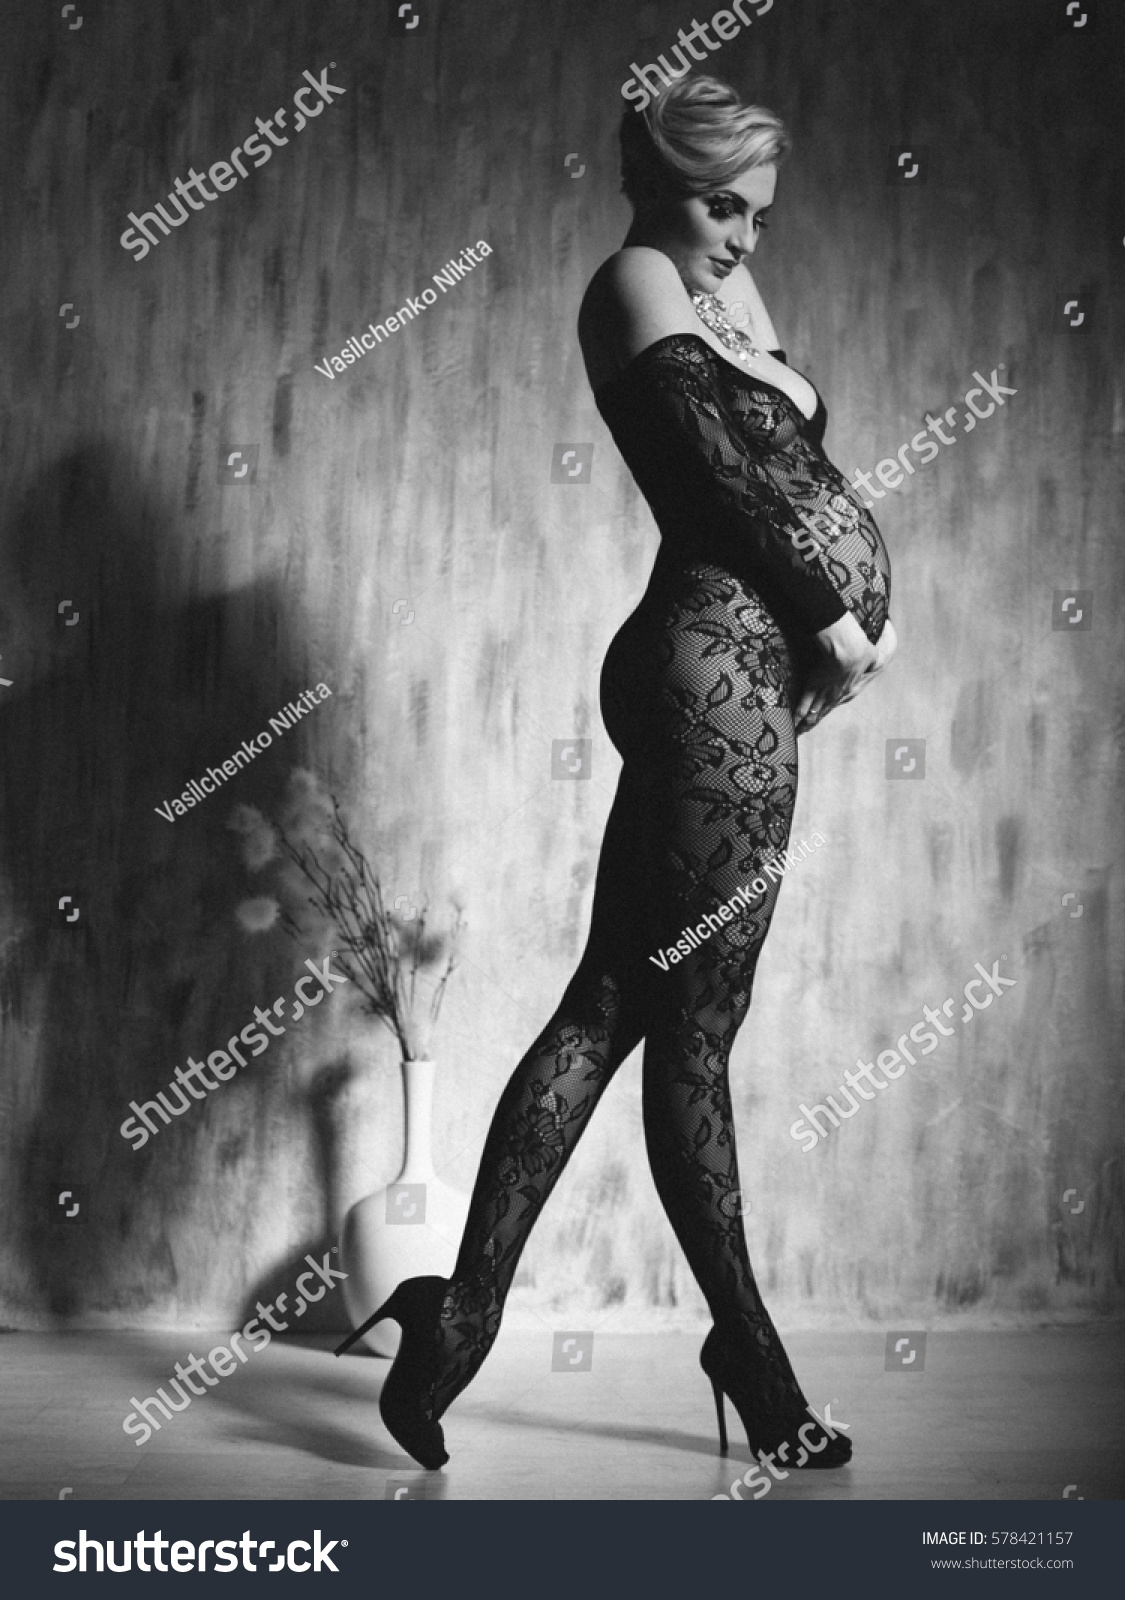 Pregnant woman in perfect form. Model in the dark. Sexy pregnancy. - Image